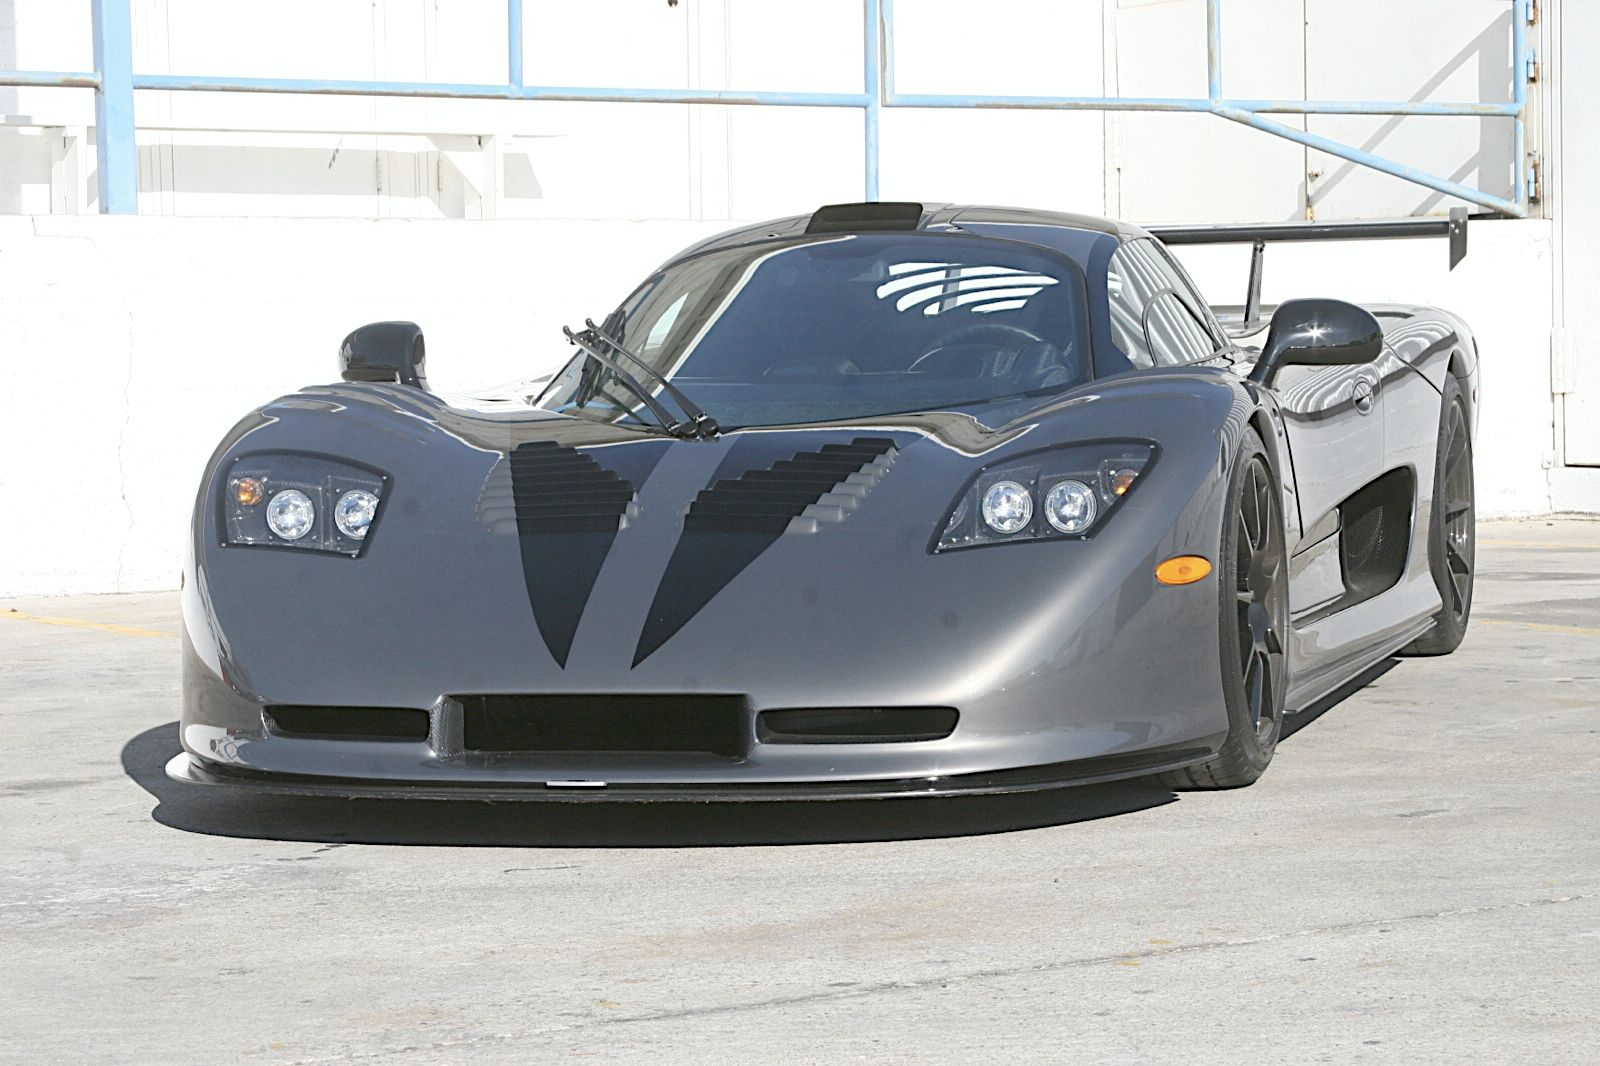 Mosler MT900 GTR XX 11 Mosler MT900 GTR XX New Edition – It is a Land Shark with Twin Turbo